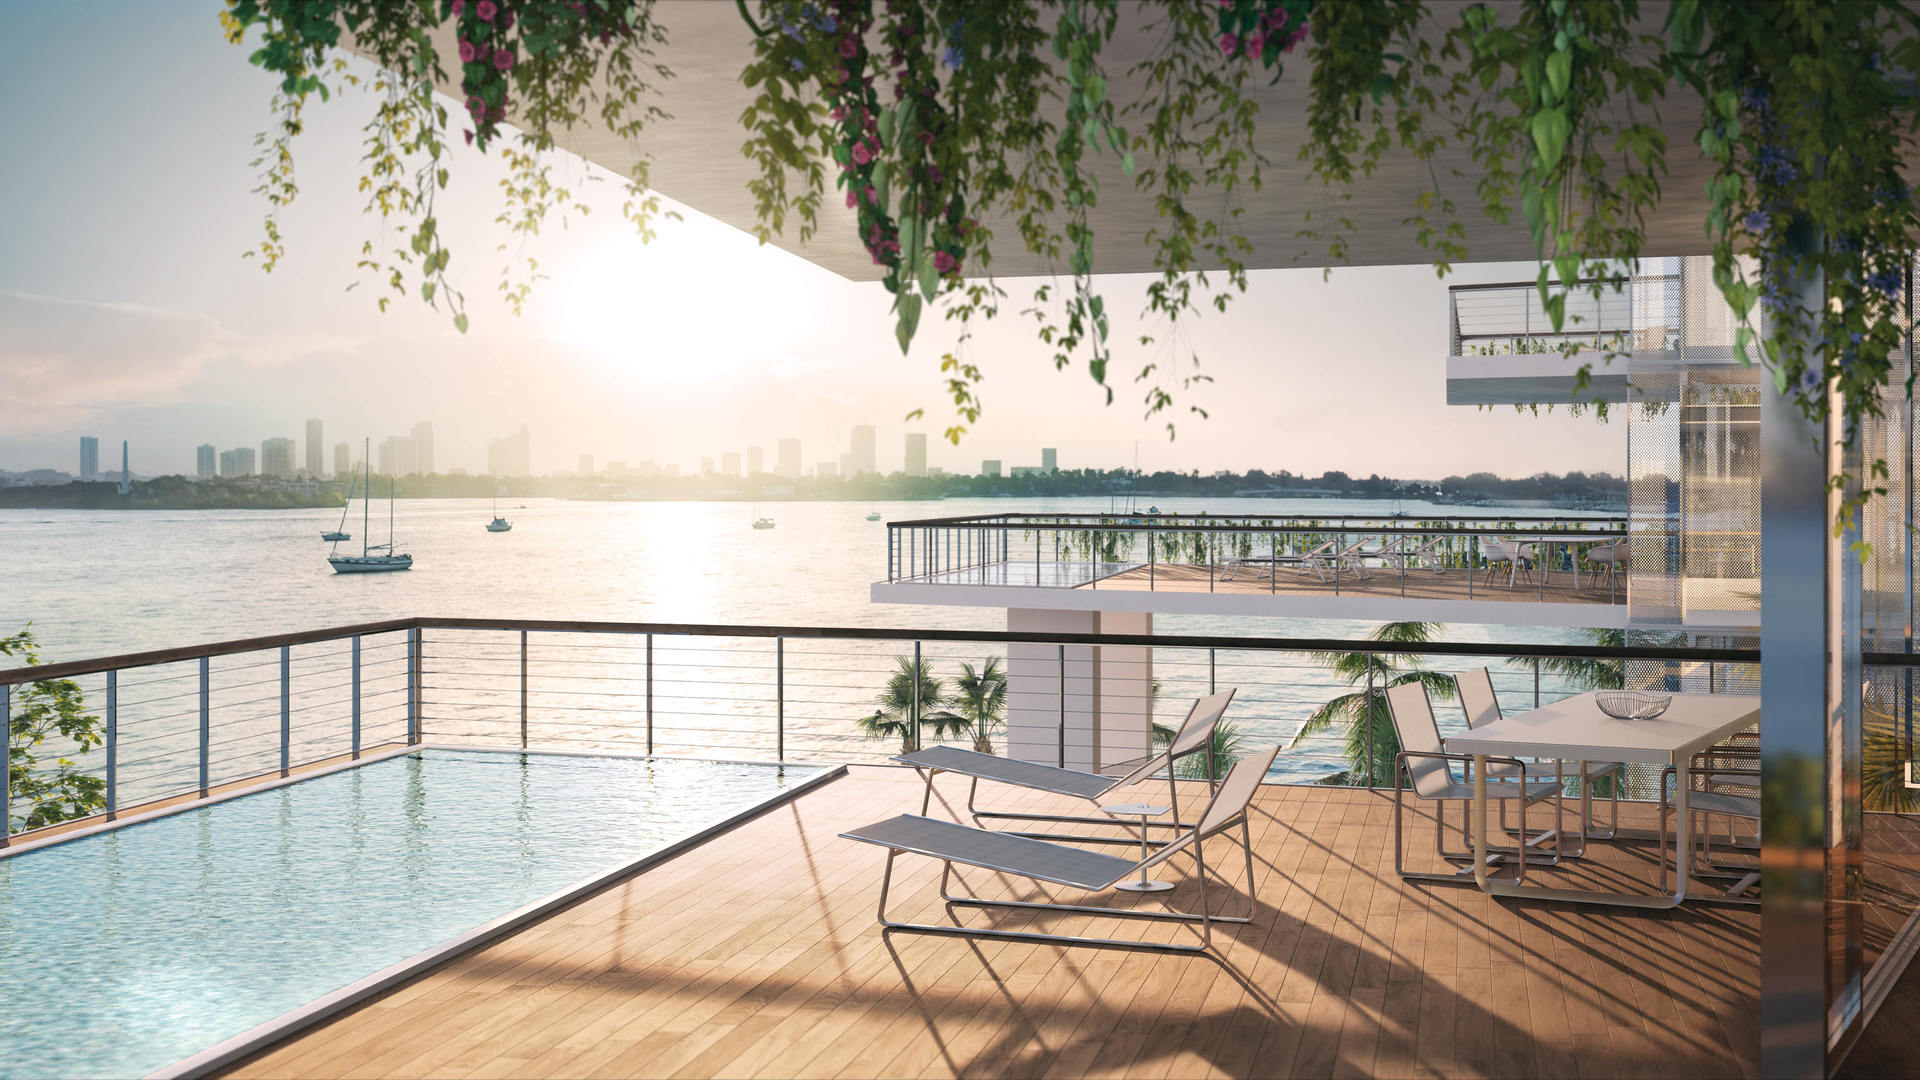 Starchitects Local Architects AirBnB Monad Terrace Design